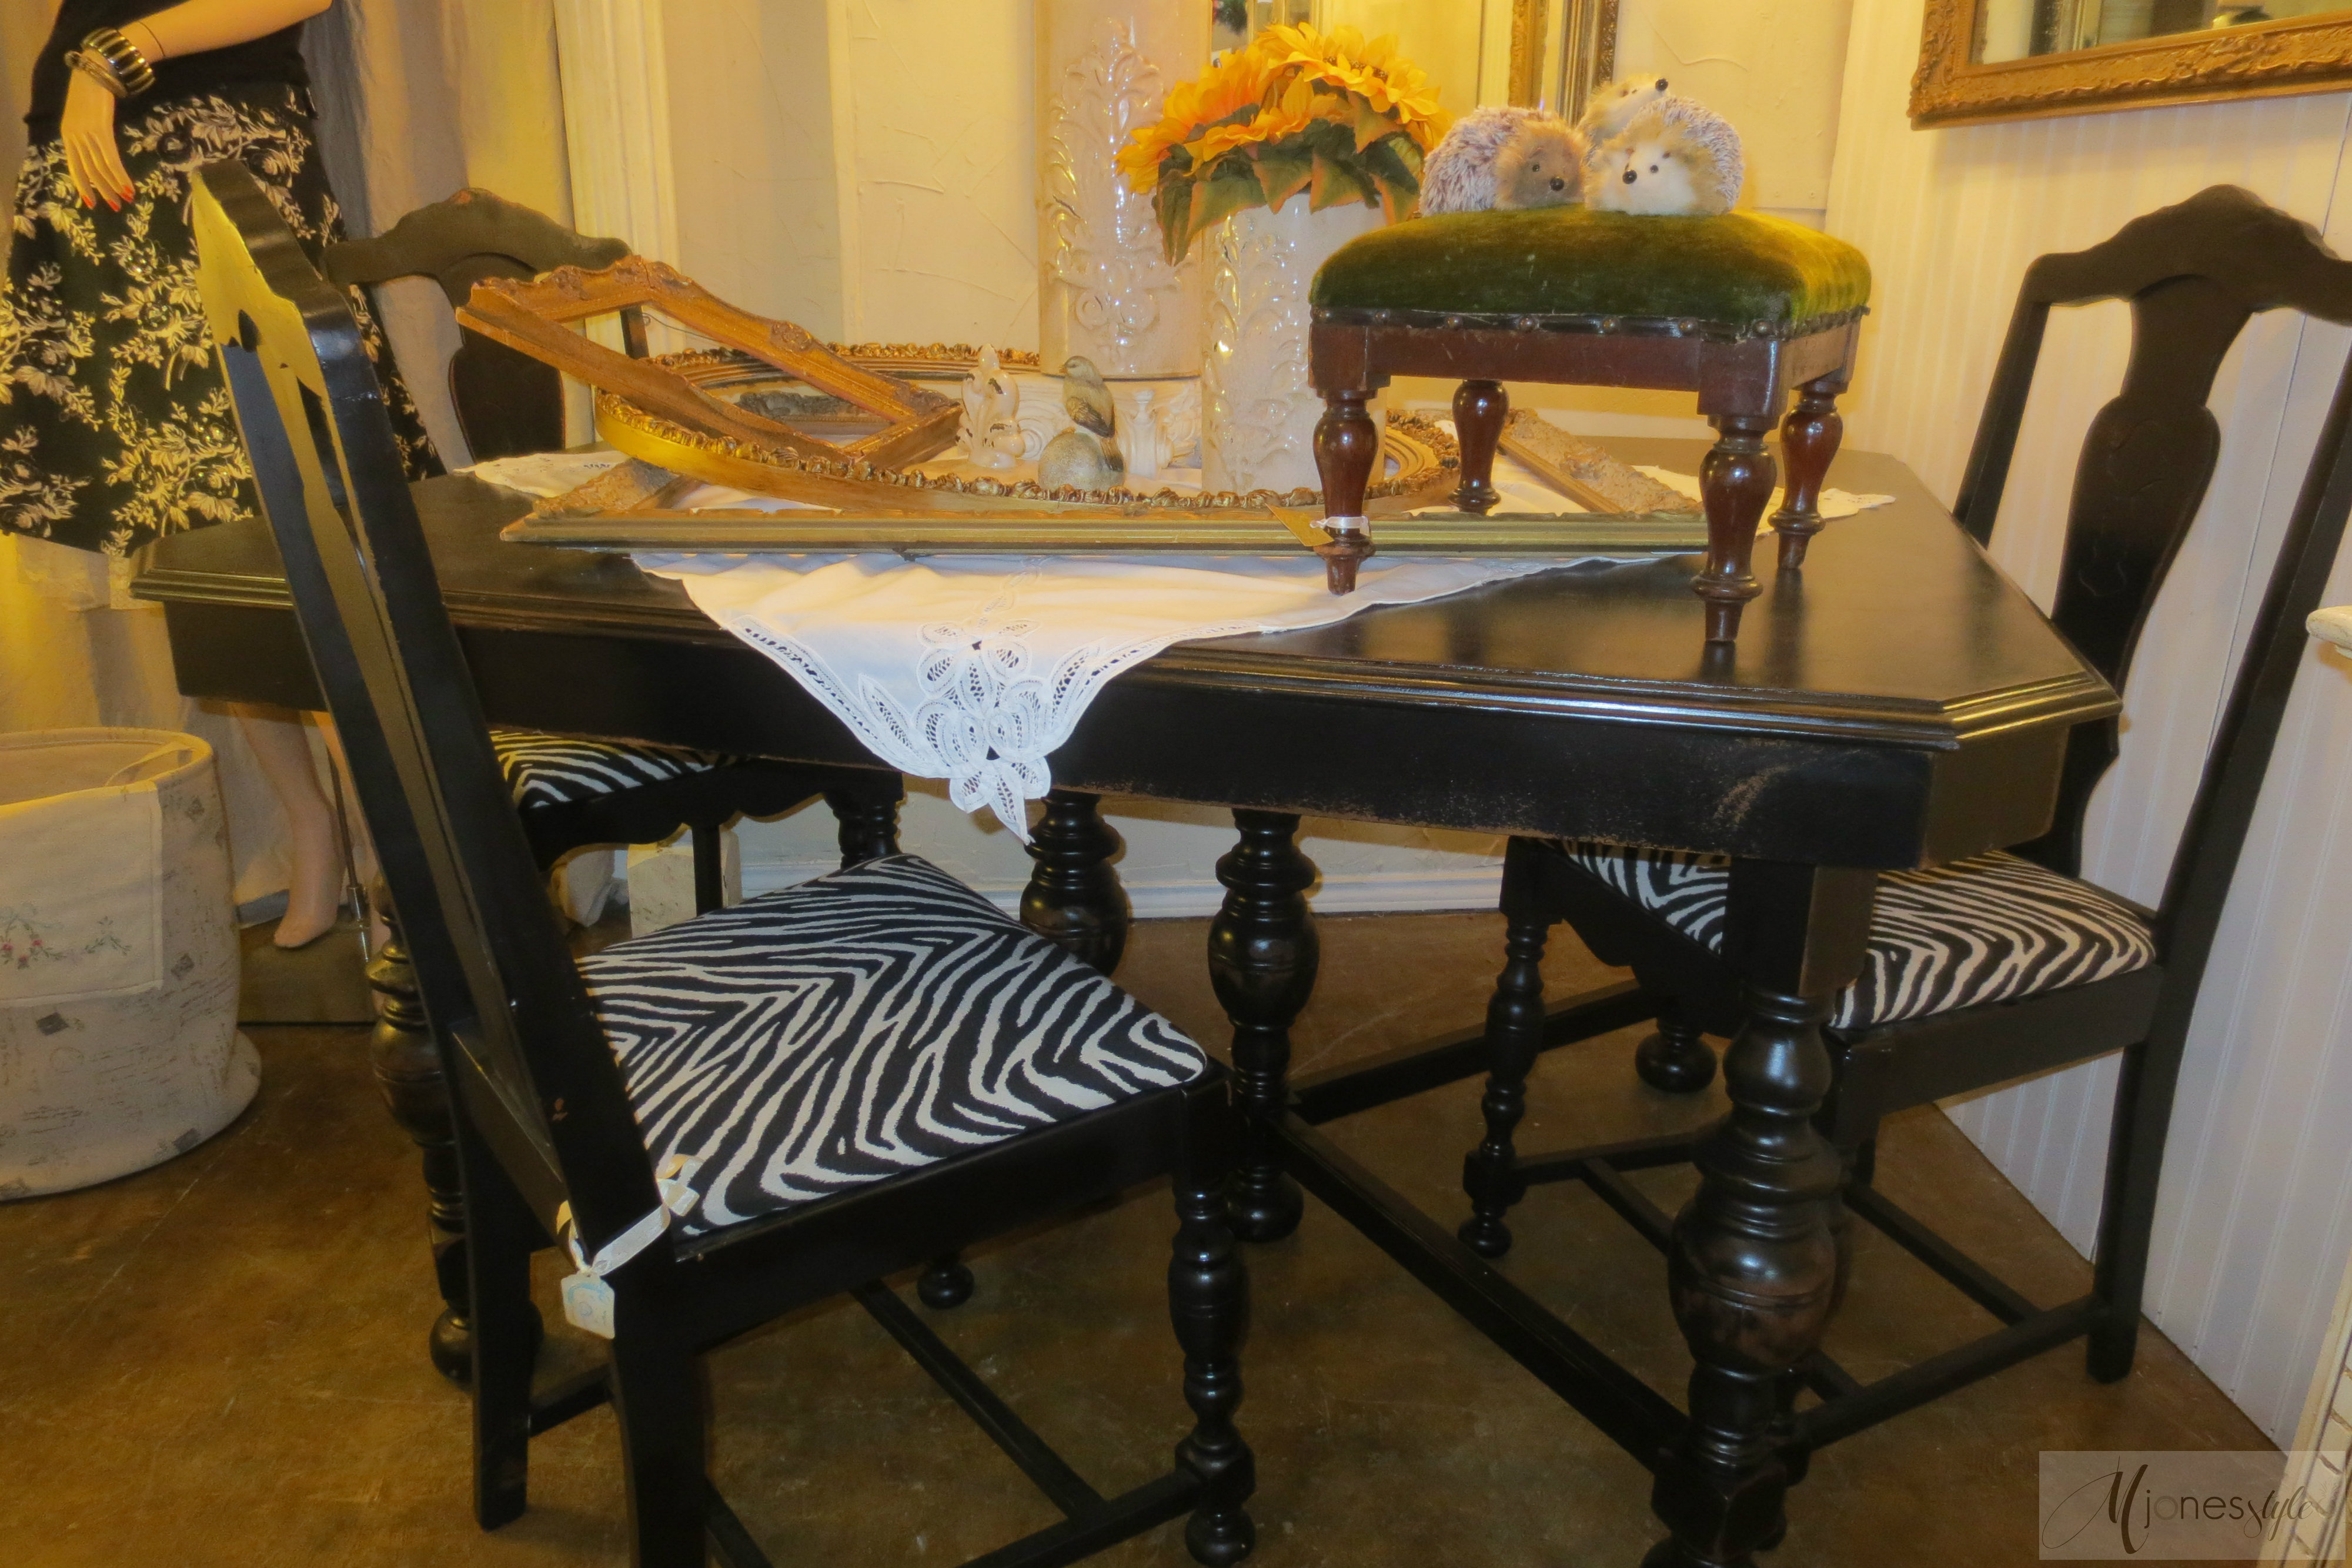 Another Dining Set In Black Zebra Print Chairs